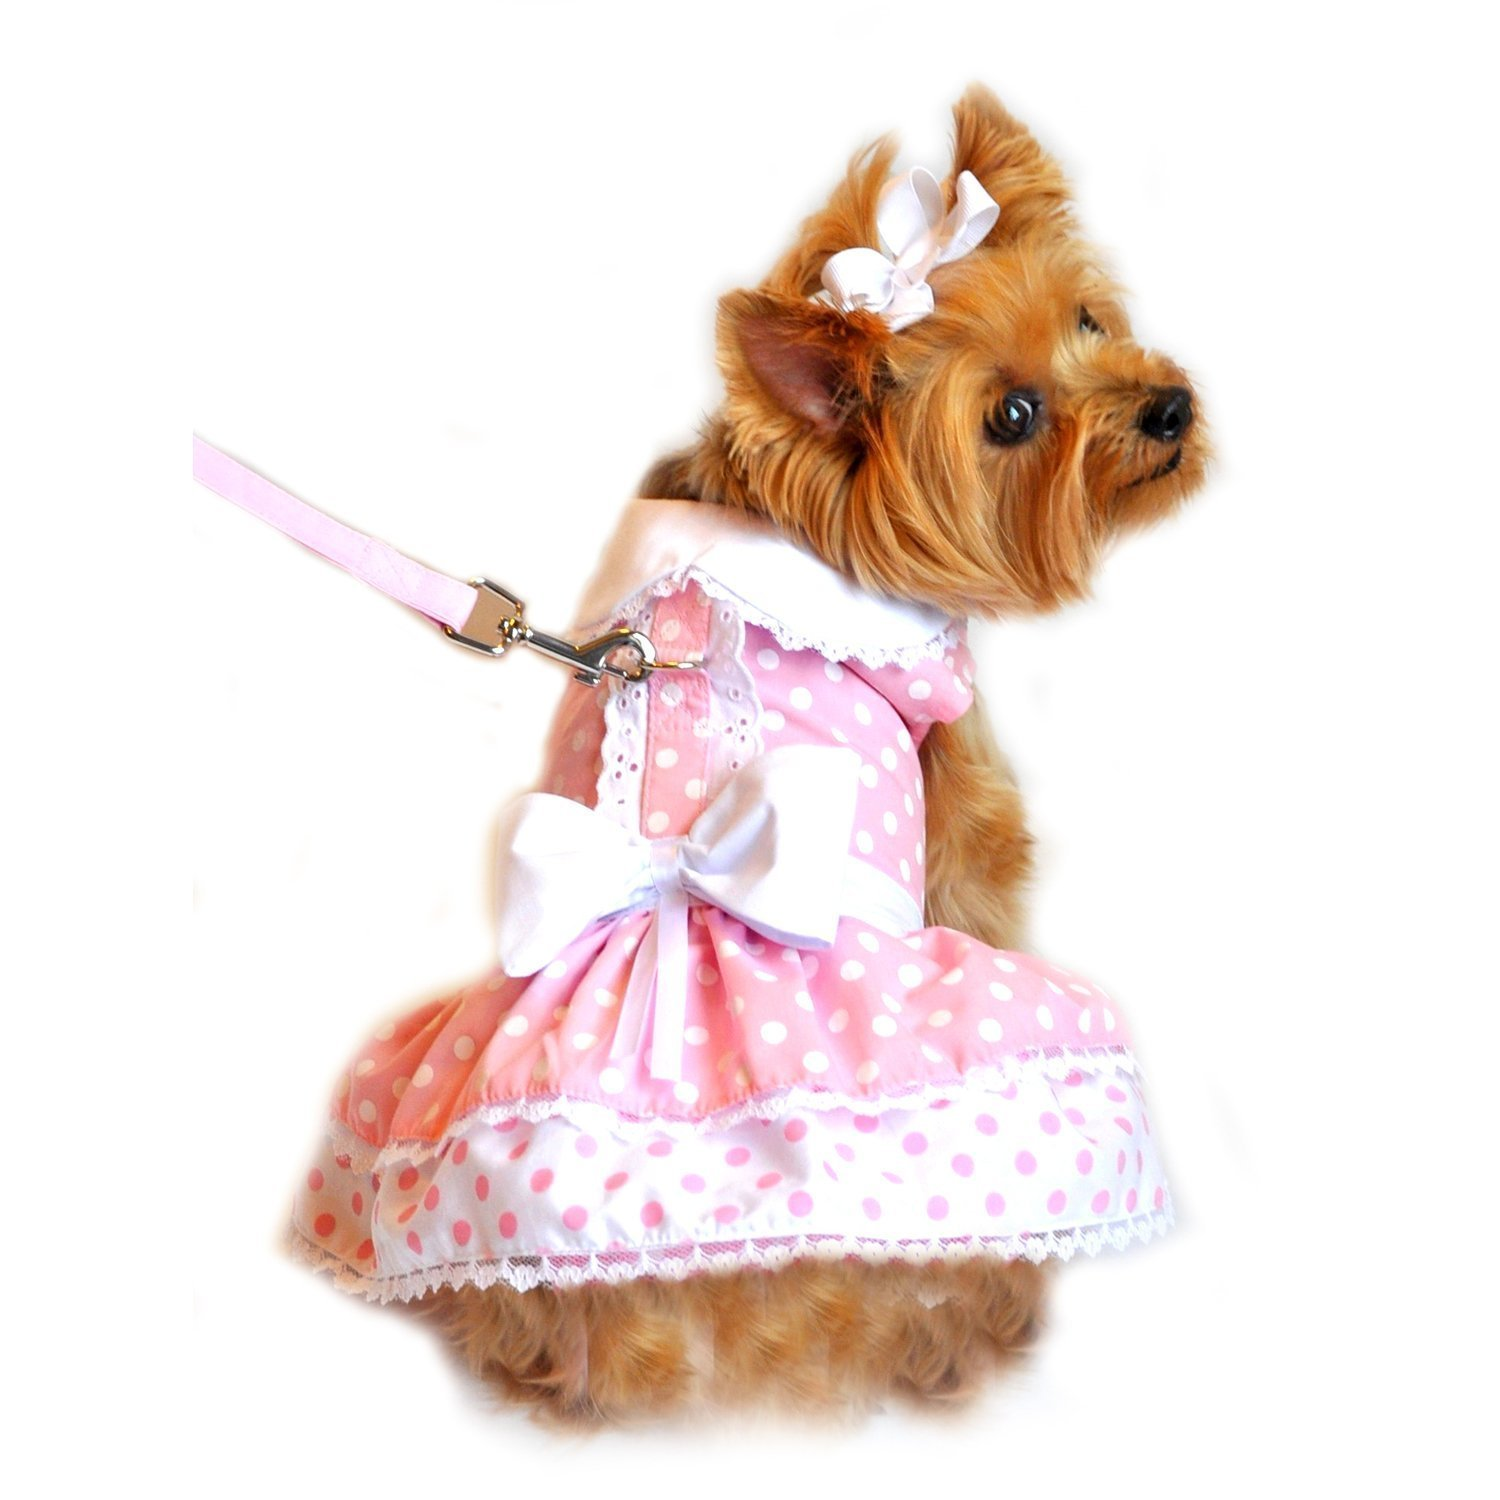 DOGGIE DESIGN Pink Polka Dot and Lace Dog Harness Dress Set L by DOGGIE DESIGN